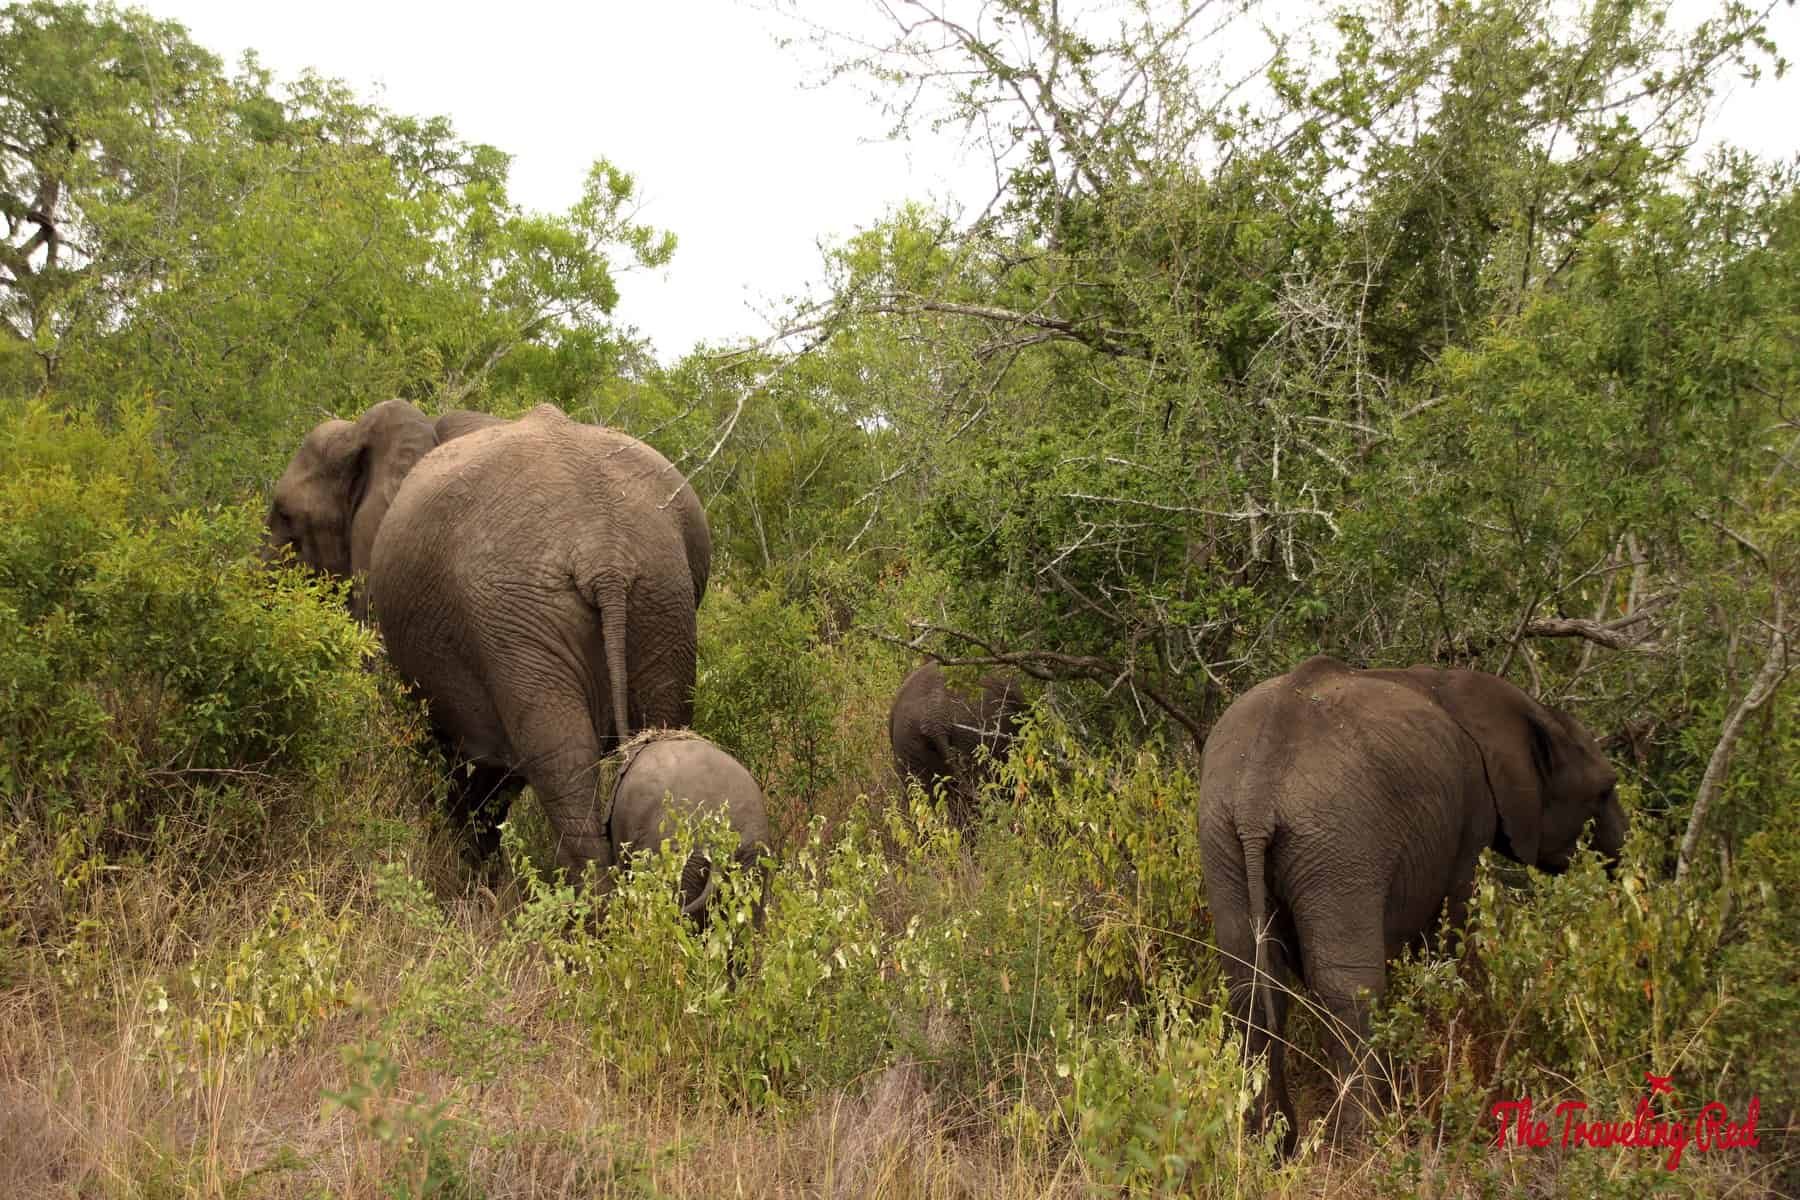 A family of elephants in South Africa